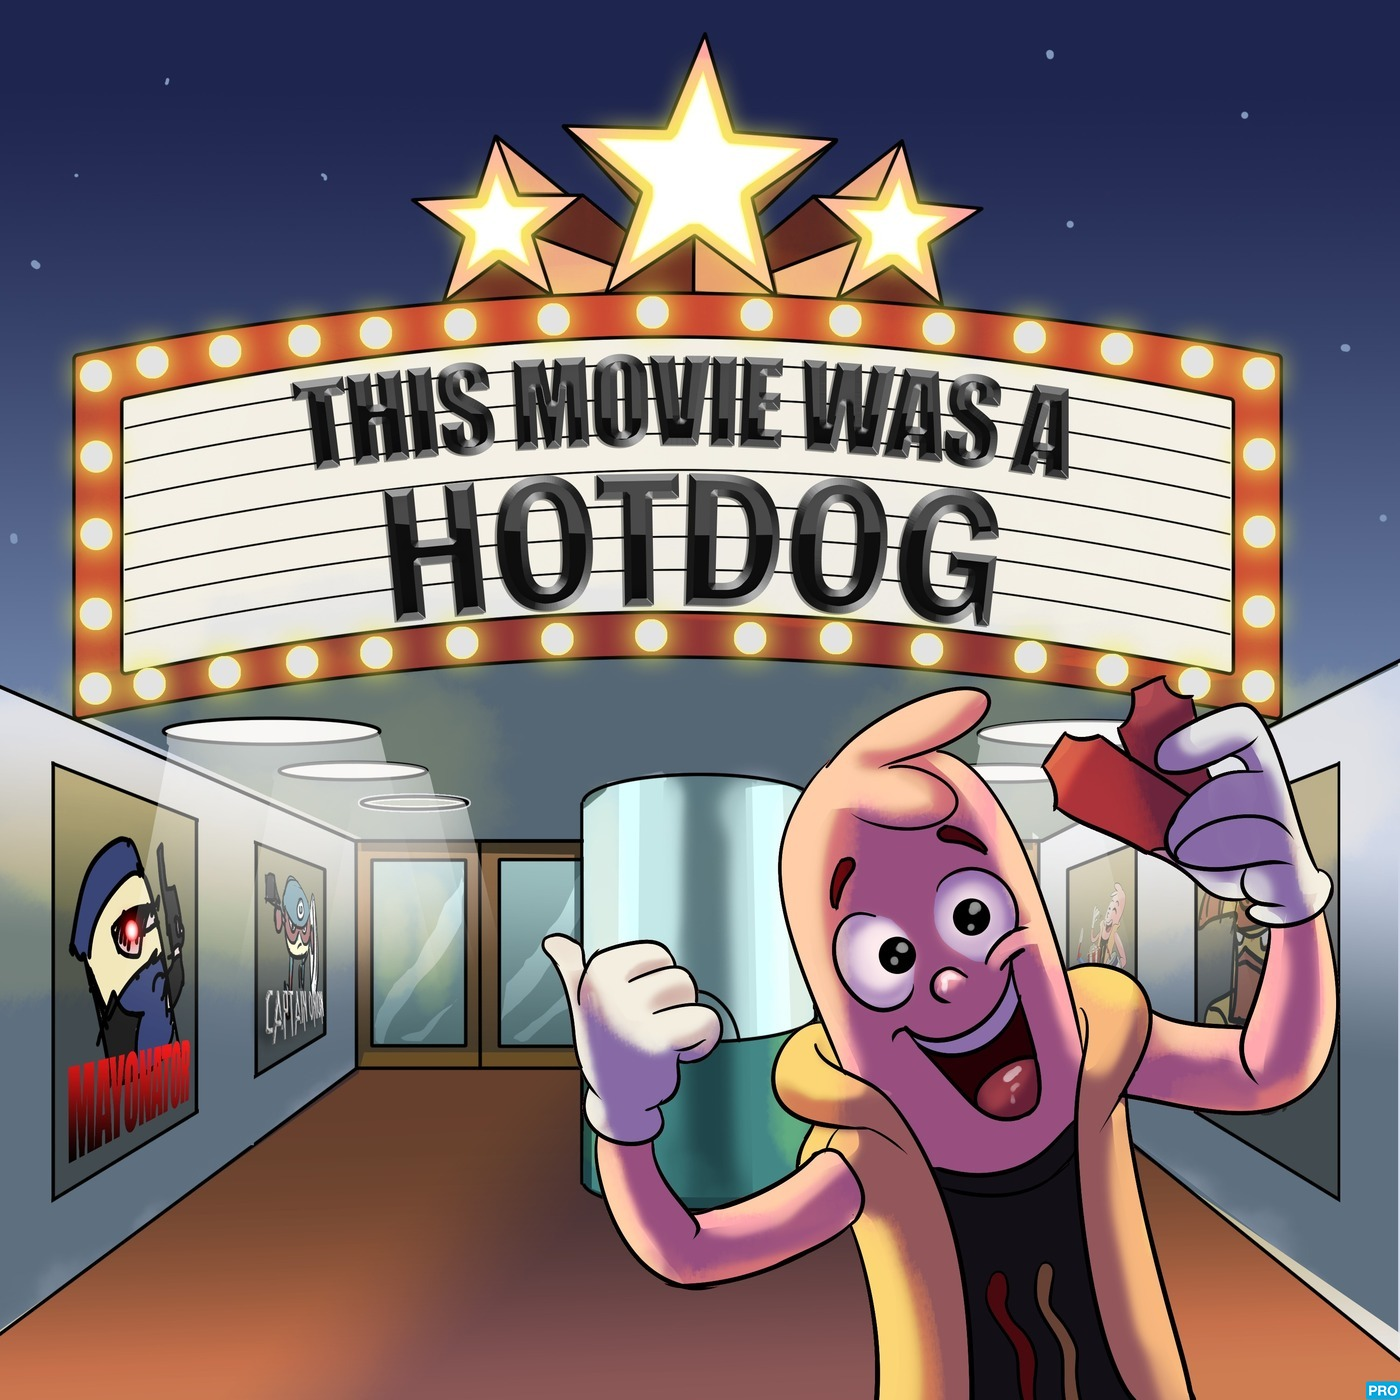 This Movie Was A Hot Dog